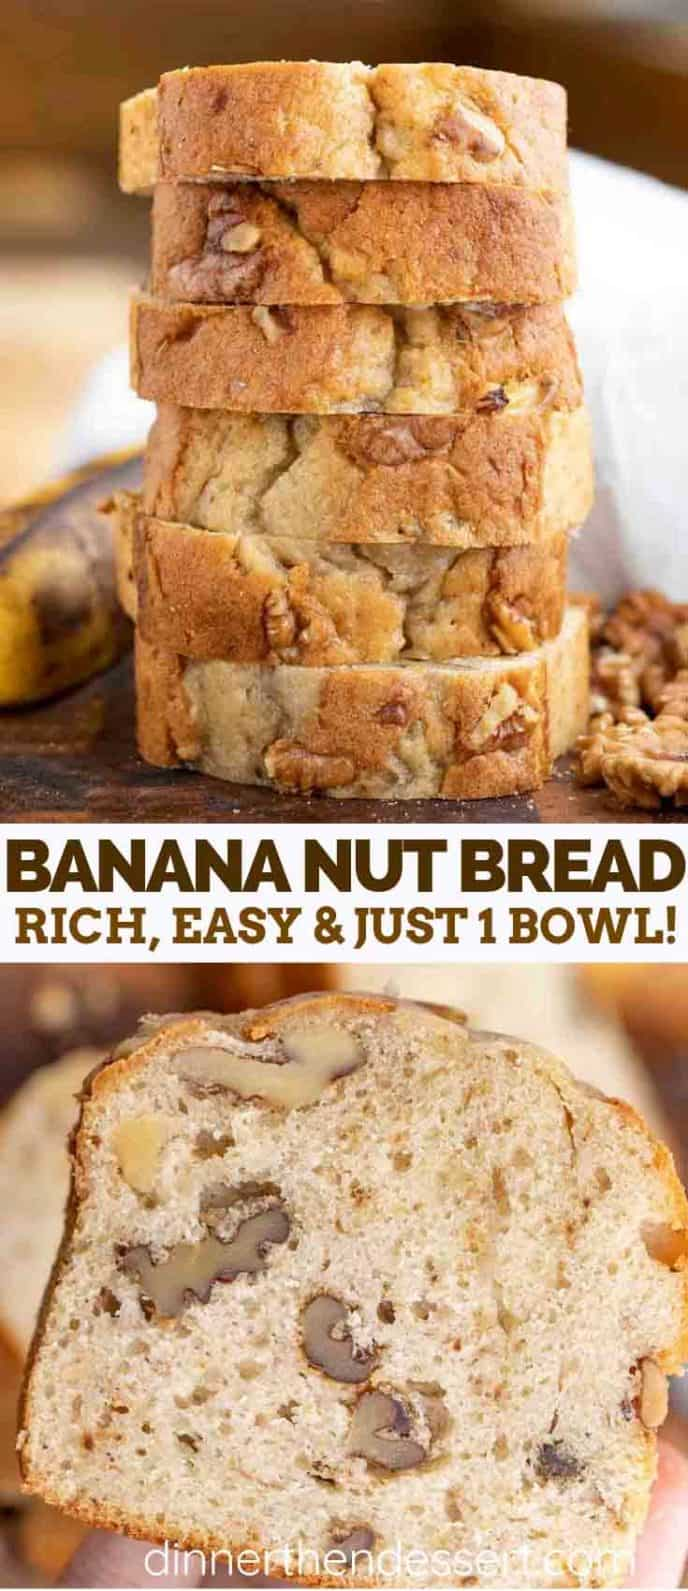 East Banana Nut Bread